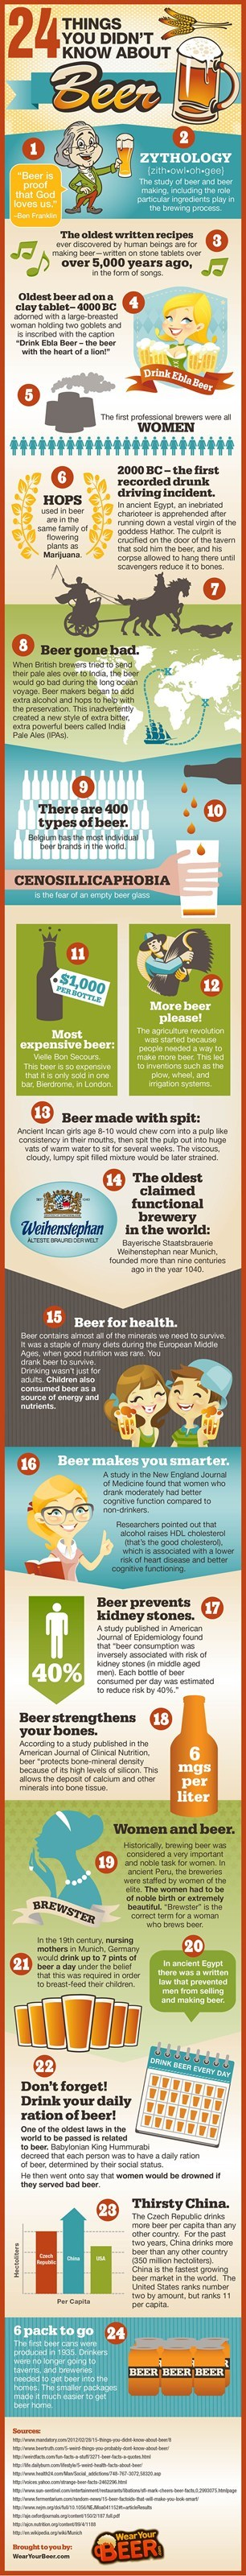 The Ultimate Guide to Beer